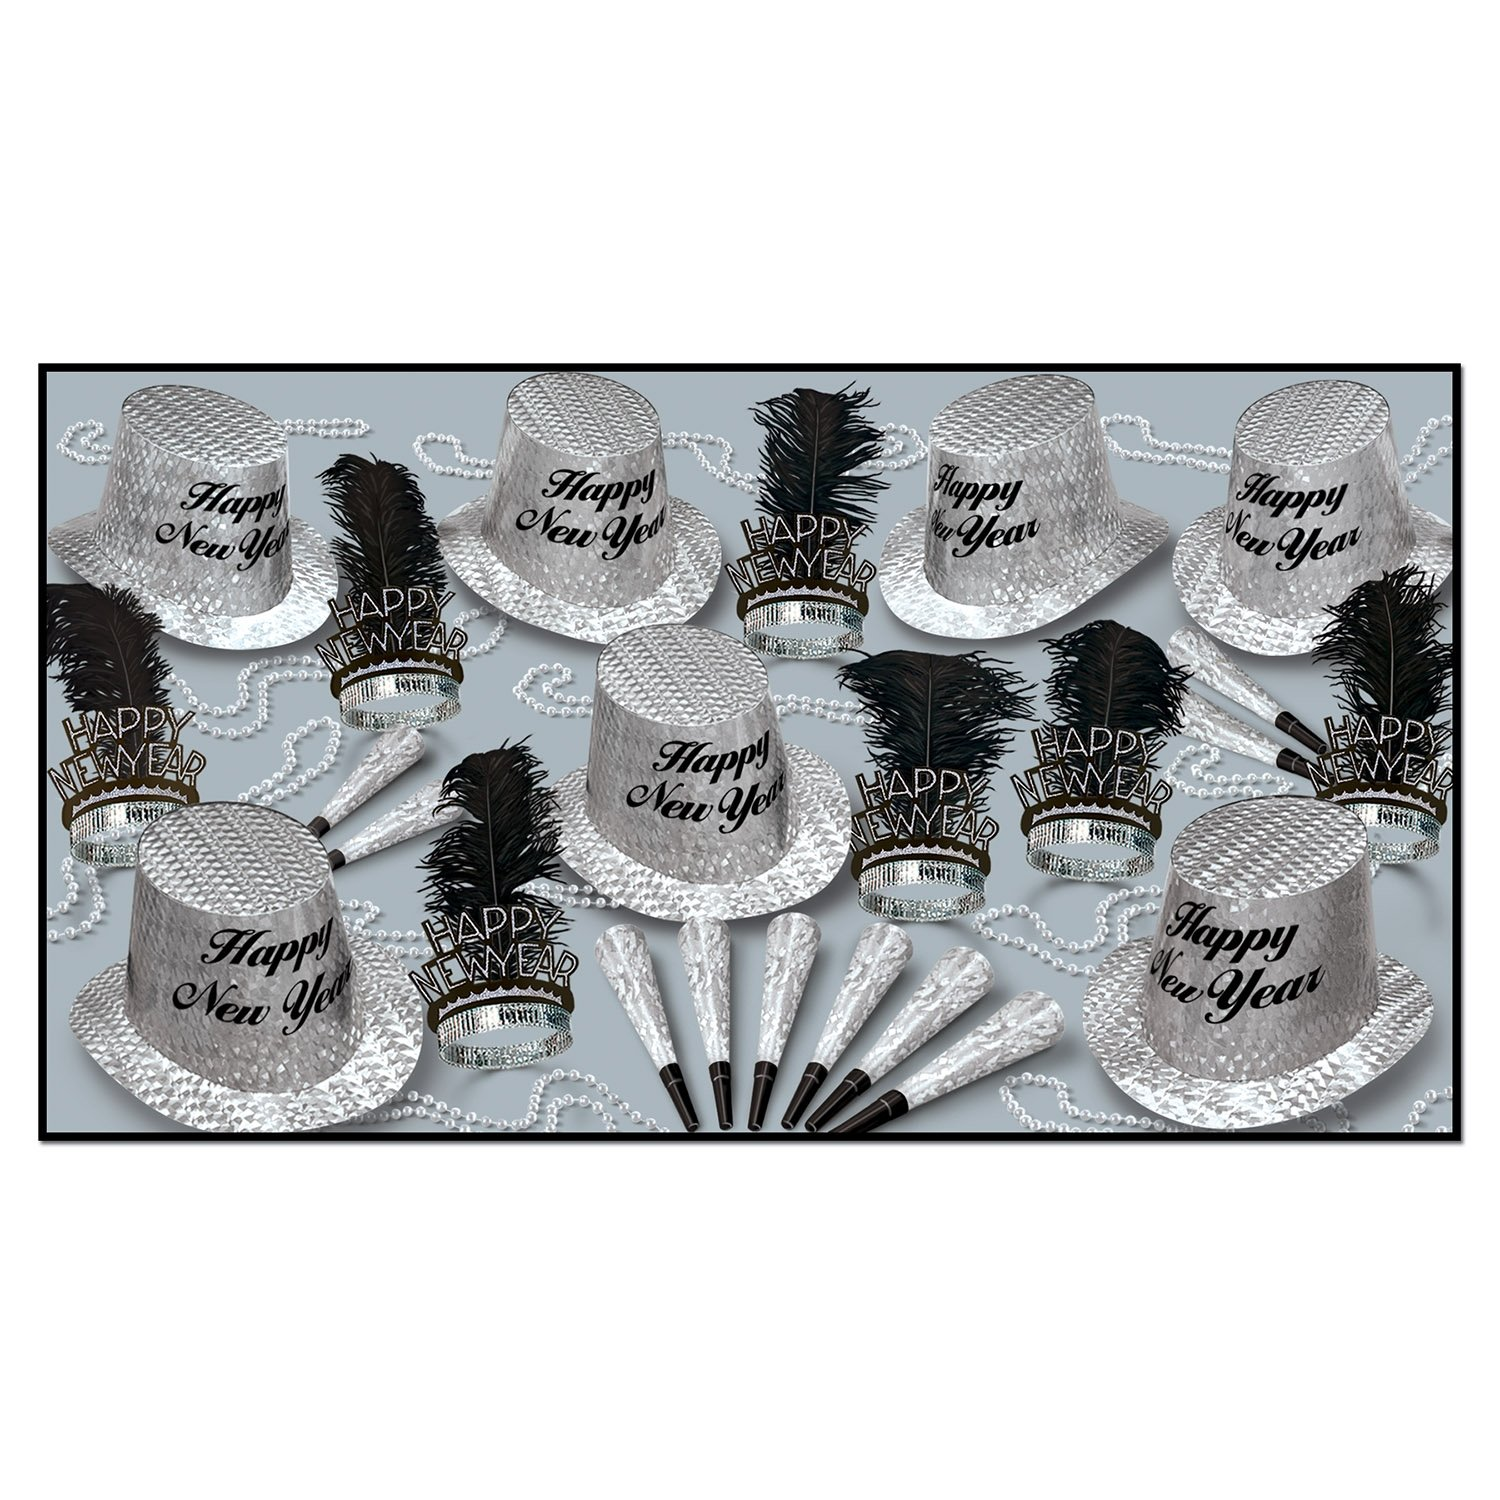 New Year Diamond Asst for 50 Party Accessory (1 count) by Beistle